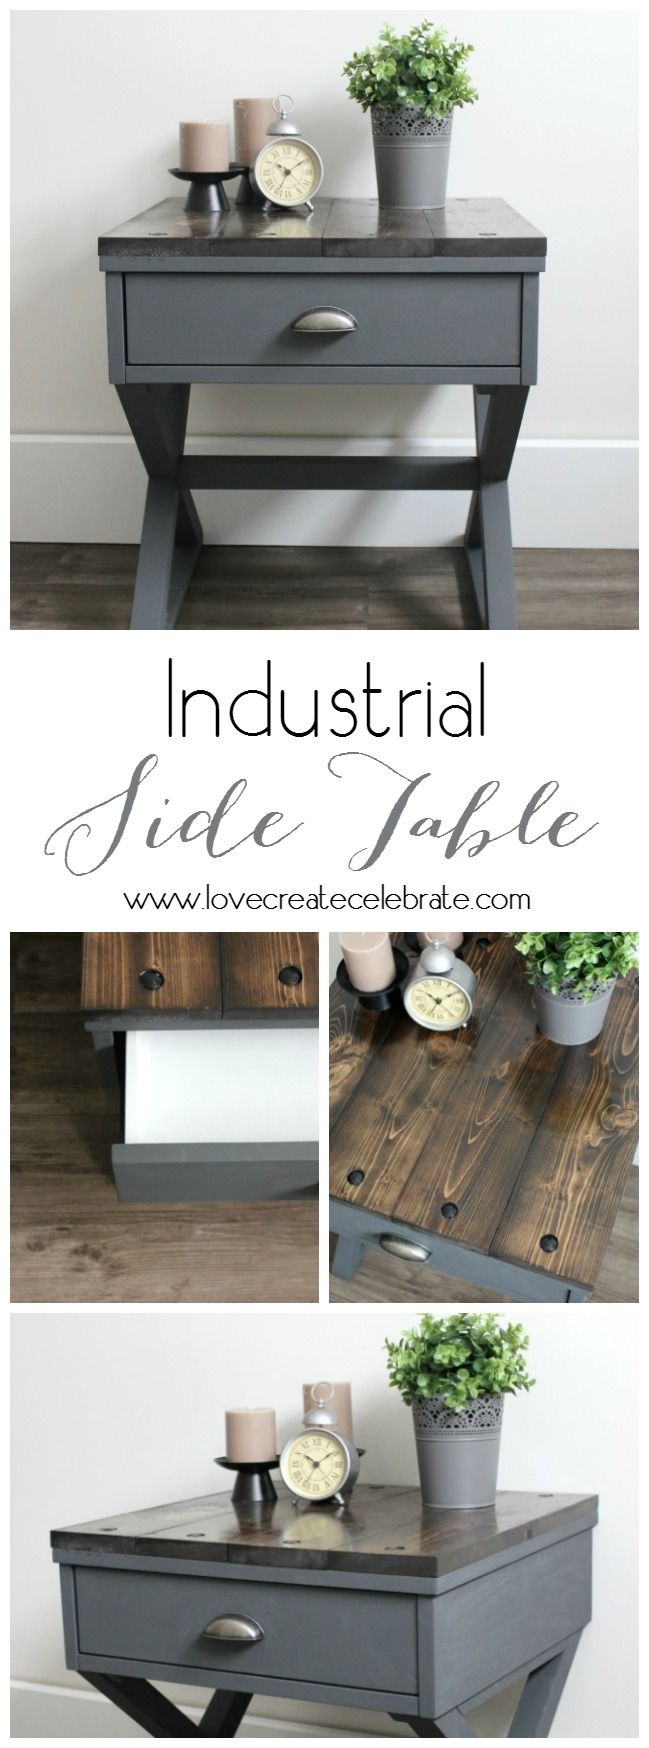 Love this tutorial for making any end table look industrial! Such a great DIY!